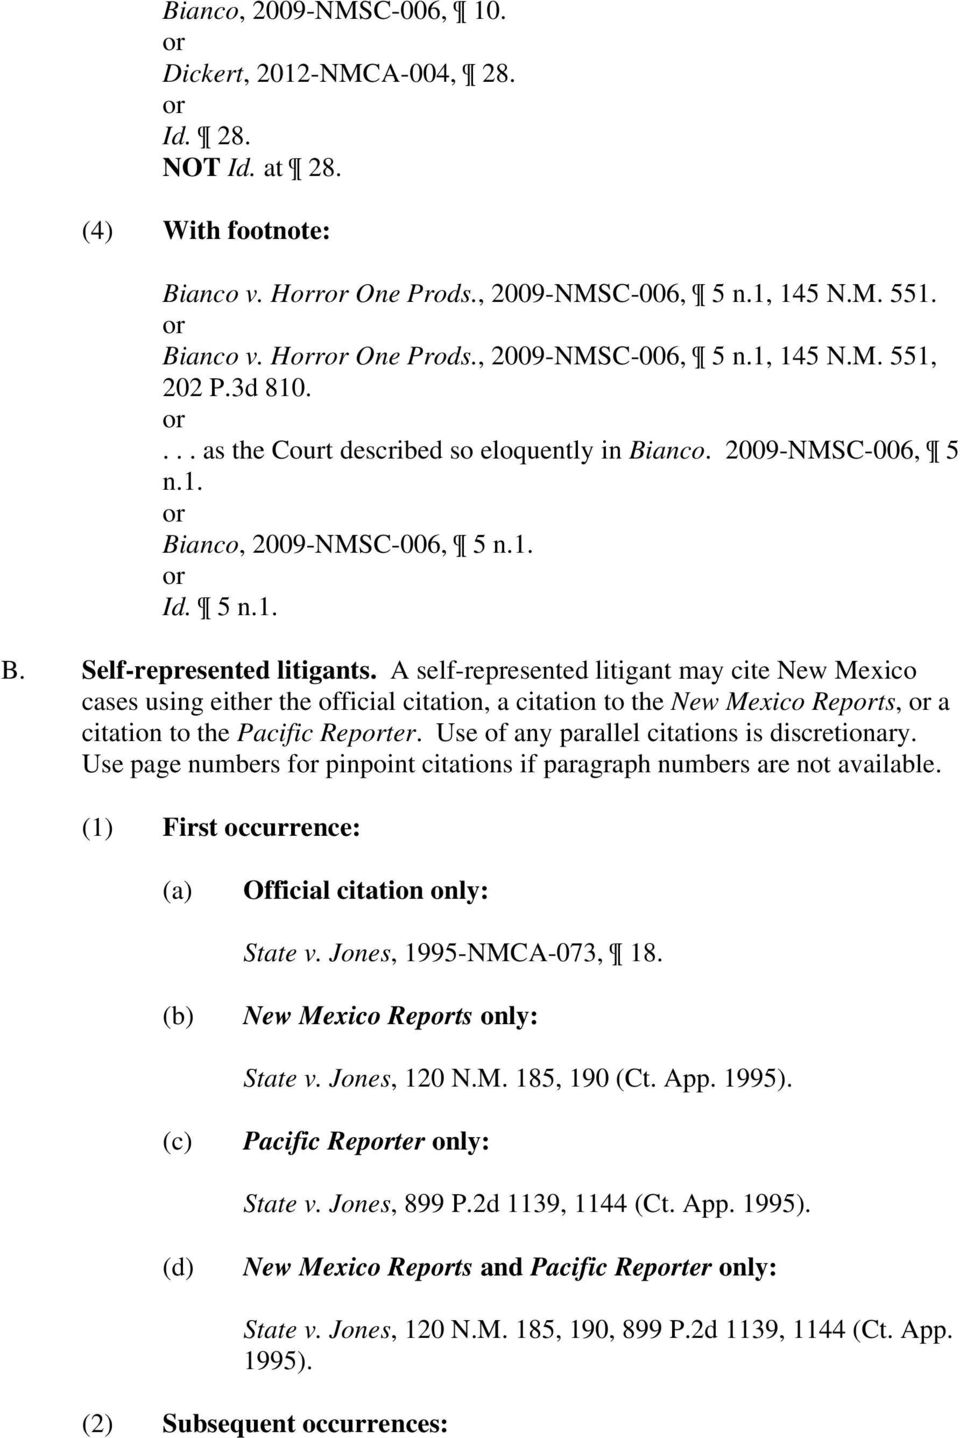 A self-represented litigant may cite New Mexico cases using either the official citation, a citation to the New Mexico Repts, a citation to the Pacific Repter.